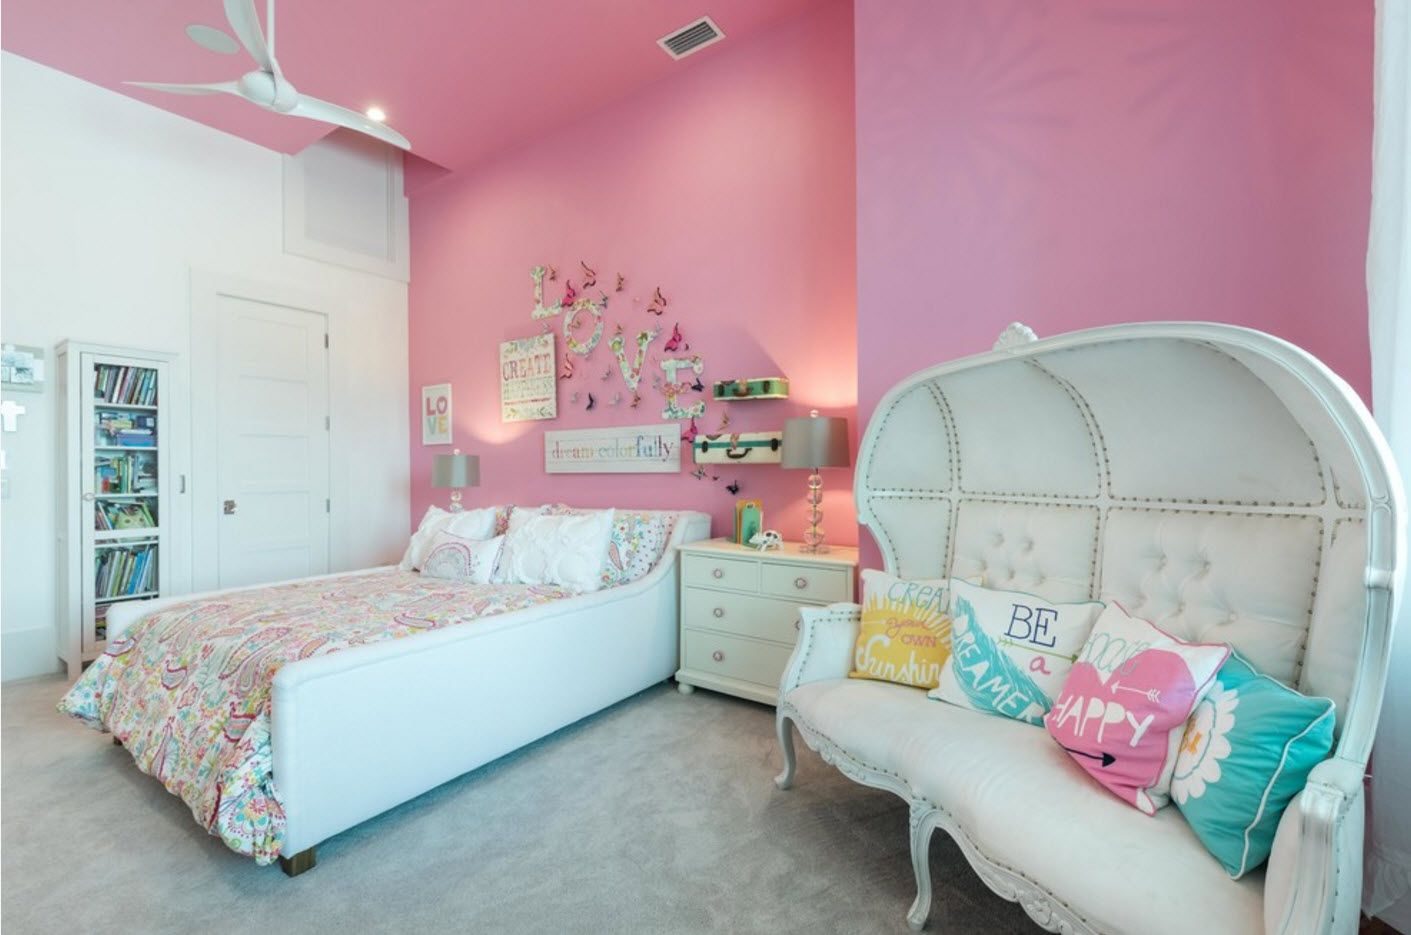 pink palette for wall decoration in kids' room